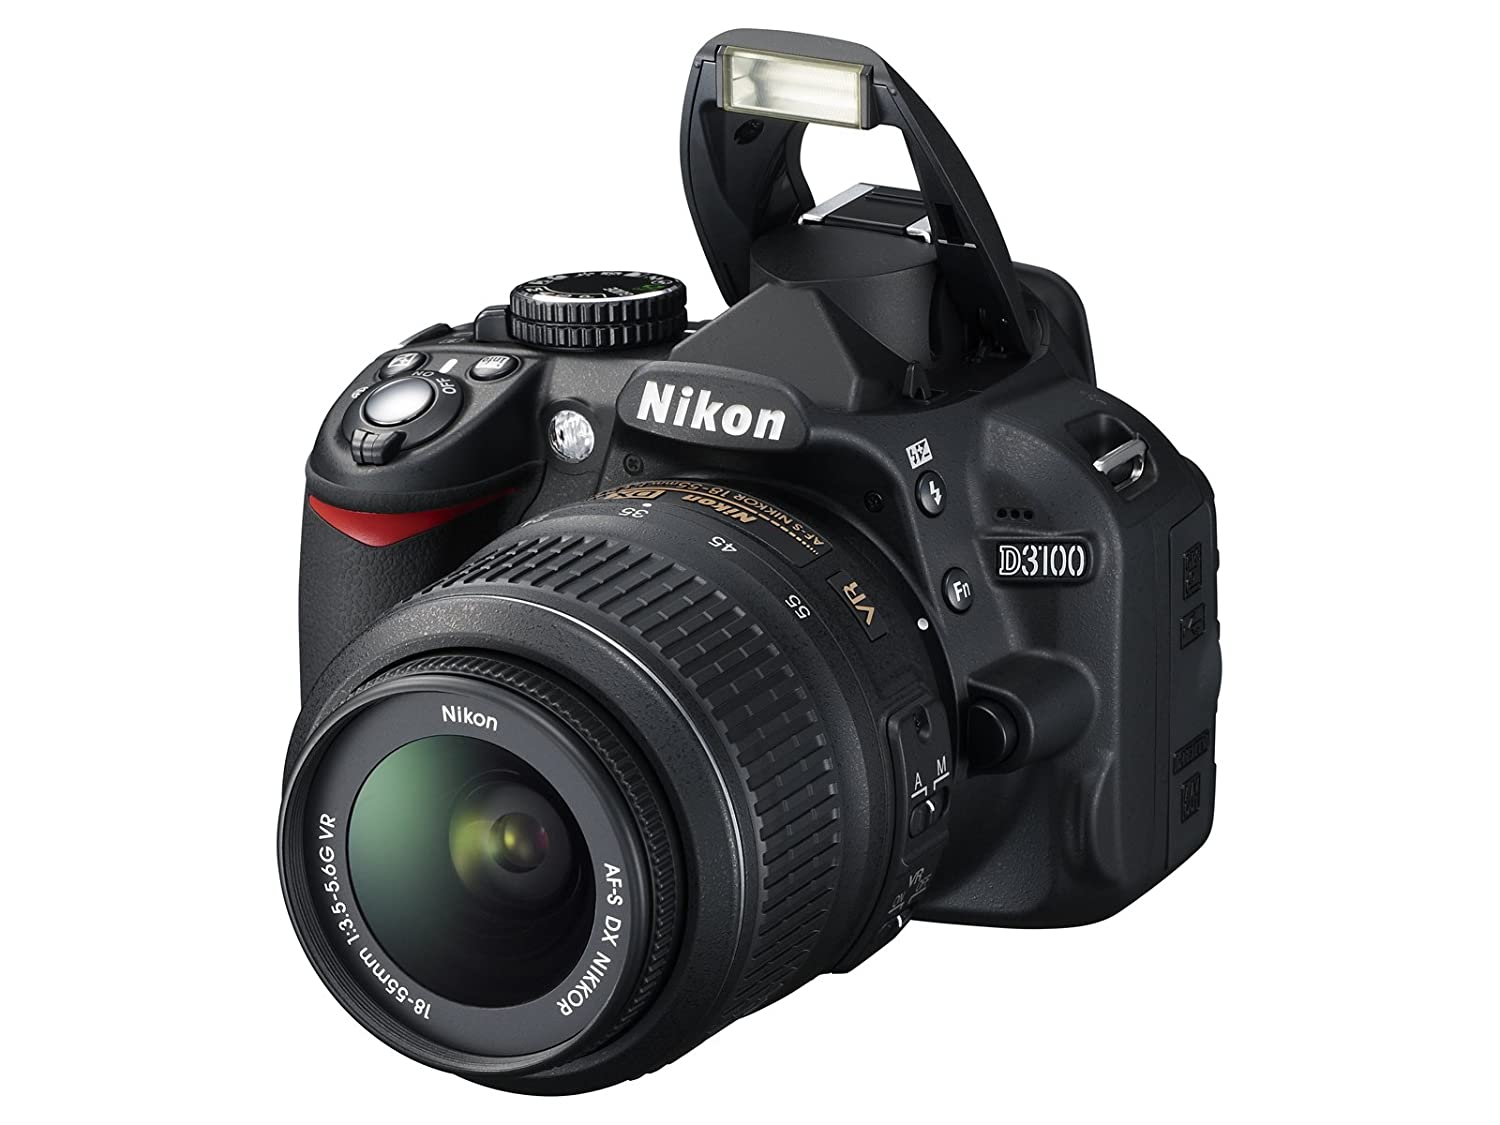 b08614f3f870 Amazon.com : Nikon D3100 DSLR Camera with 18-55mm f/3.5-5.6 Auto Focus-S  Nikkor Zoom Lens (Discontinued by Manufacturer) : Camera & Photo